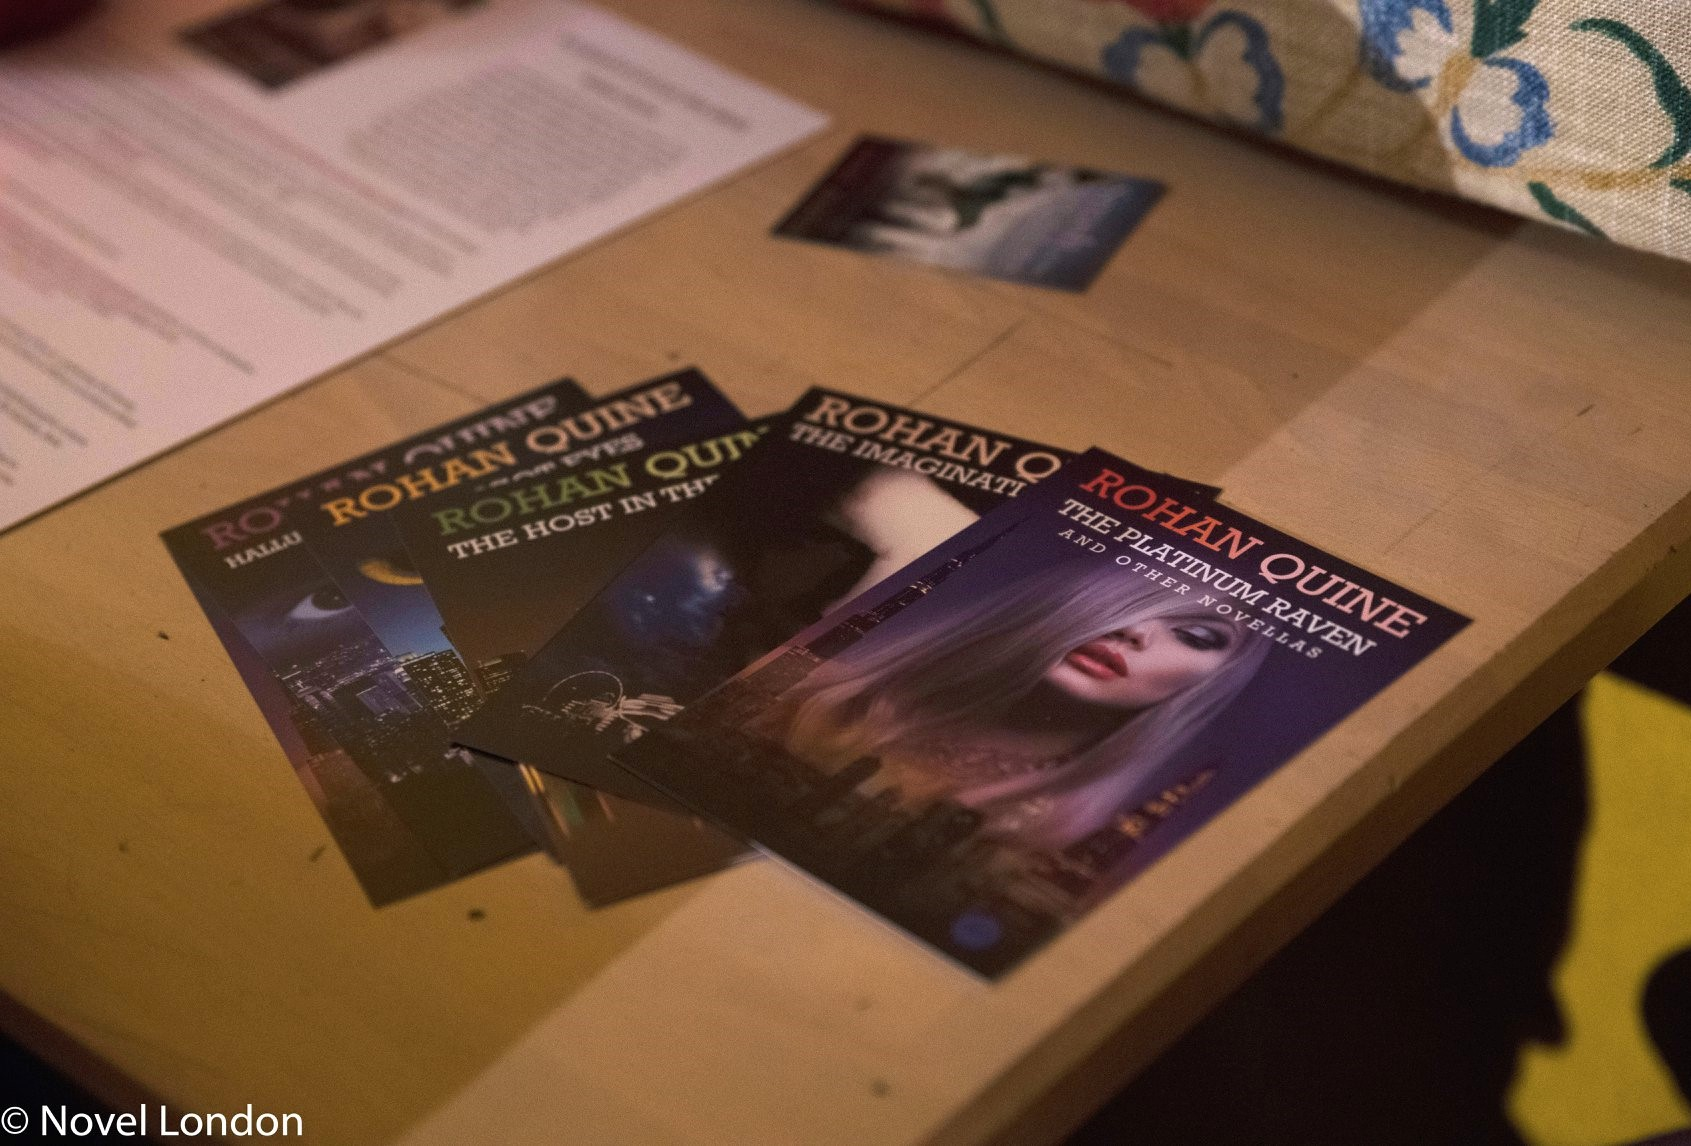 Launch of Rohan Quine's 'The Beasts of Electra Drive' & Dan Holloway's 'Kill Land' - 12 (photo by Novel London)